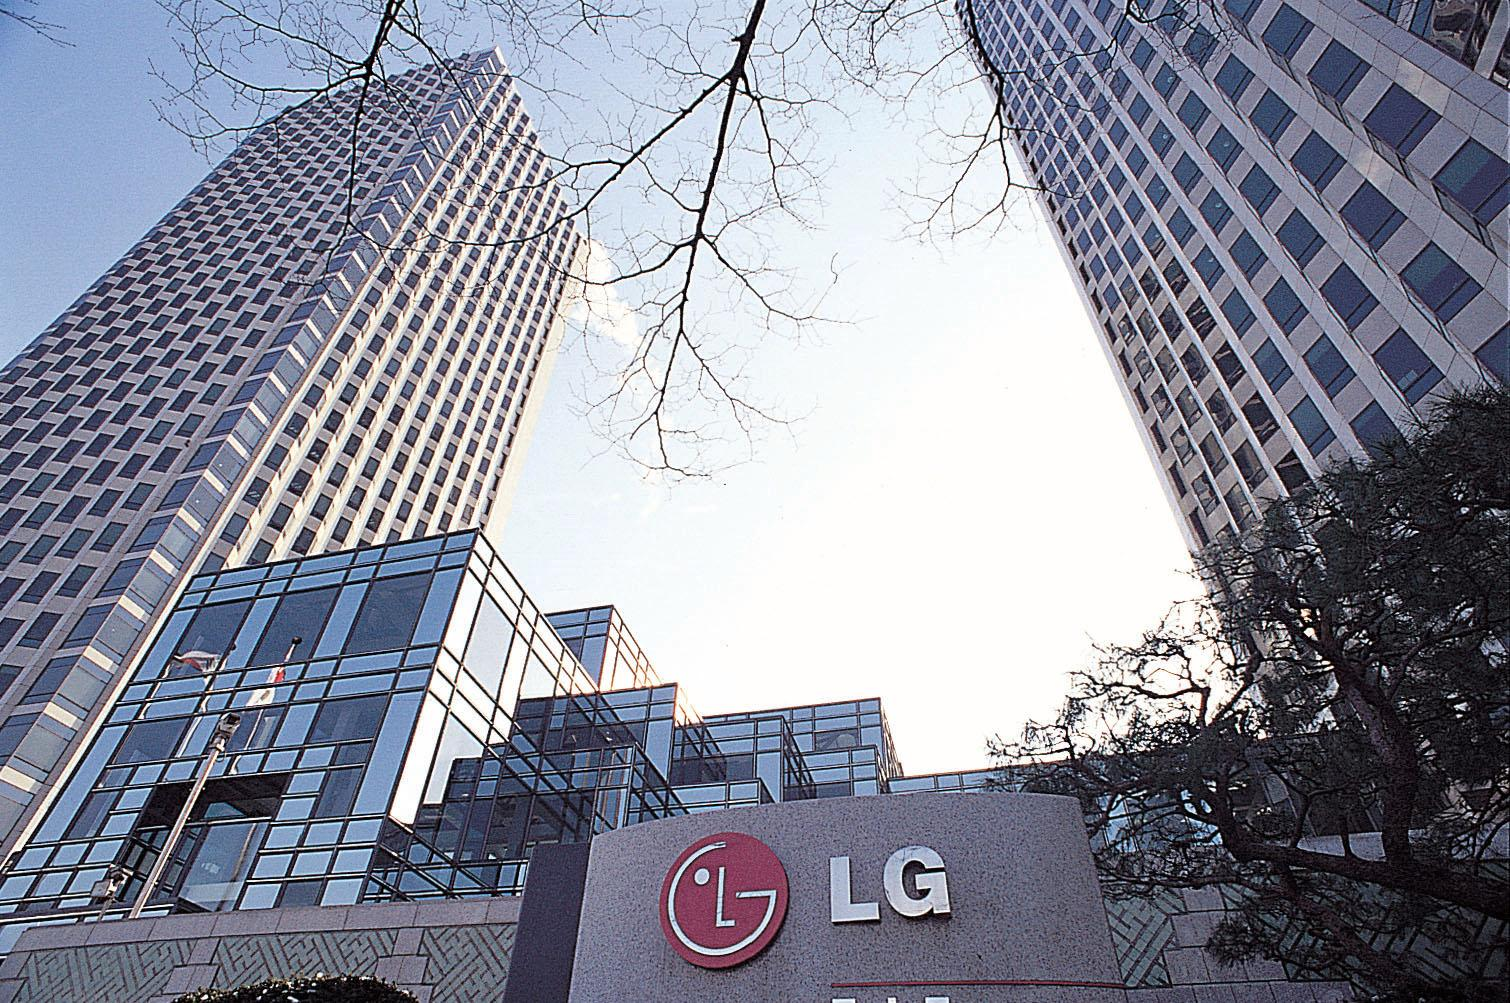 LG Twin Towers, the international headquarters of LG, located in Seoul, South Korea.